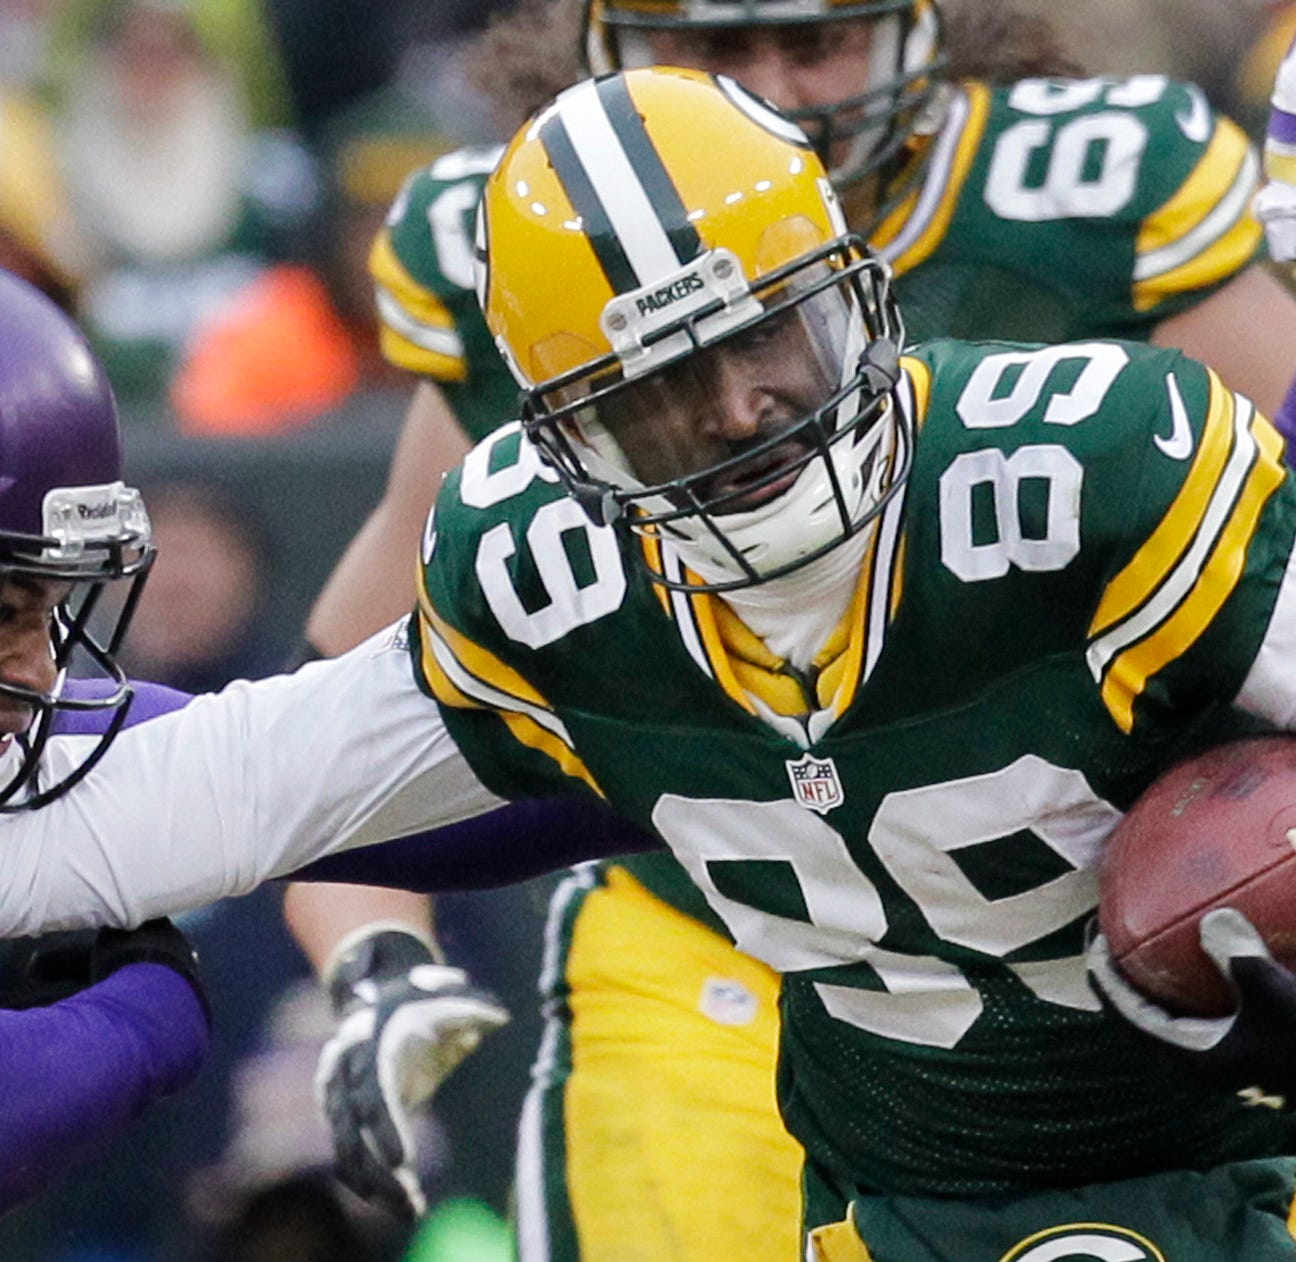 Five years ago, the Packers also tied the Vikings at Lambeau as part of a wild final six weeks